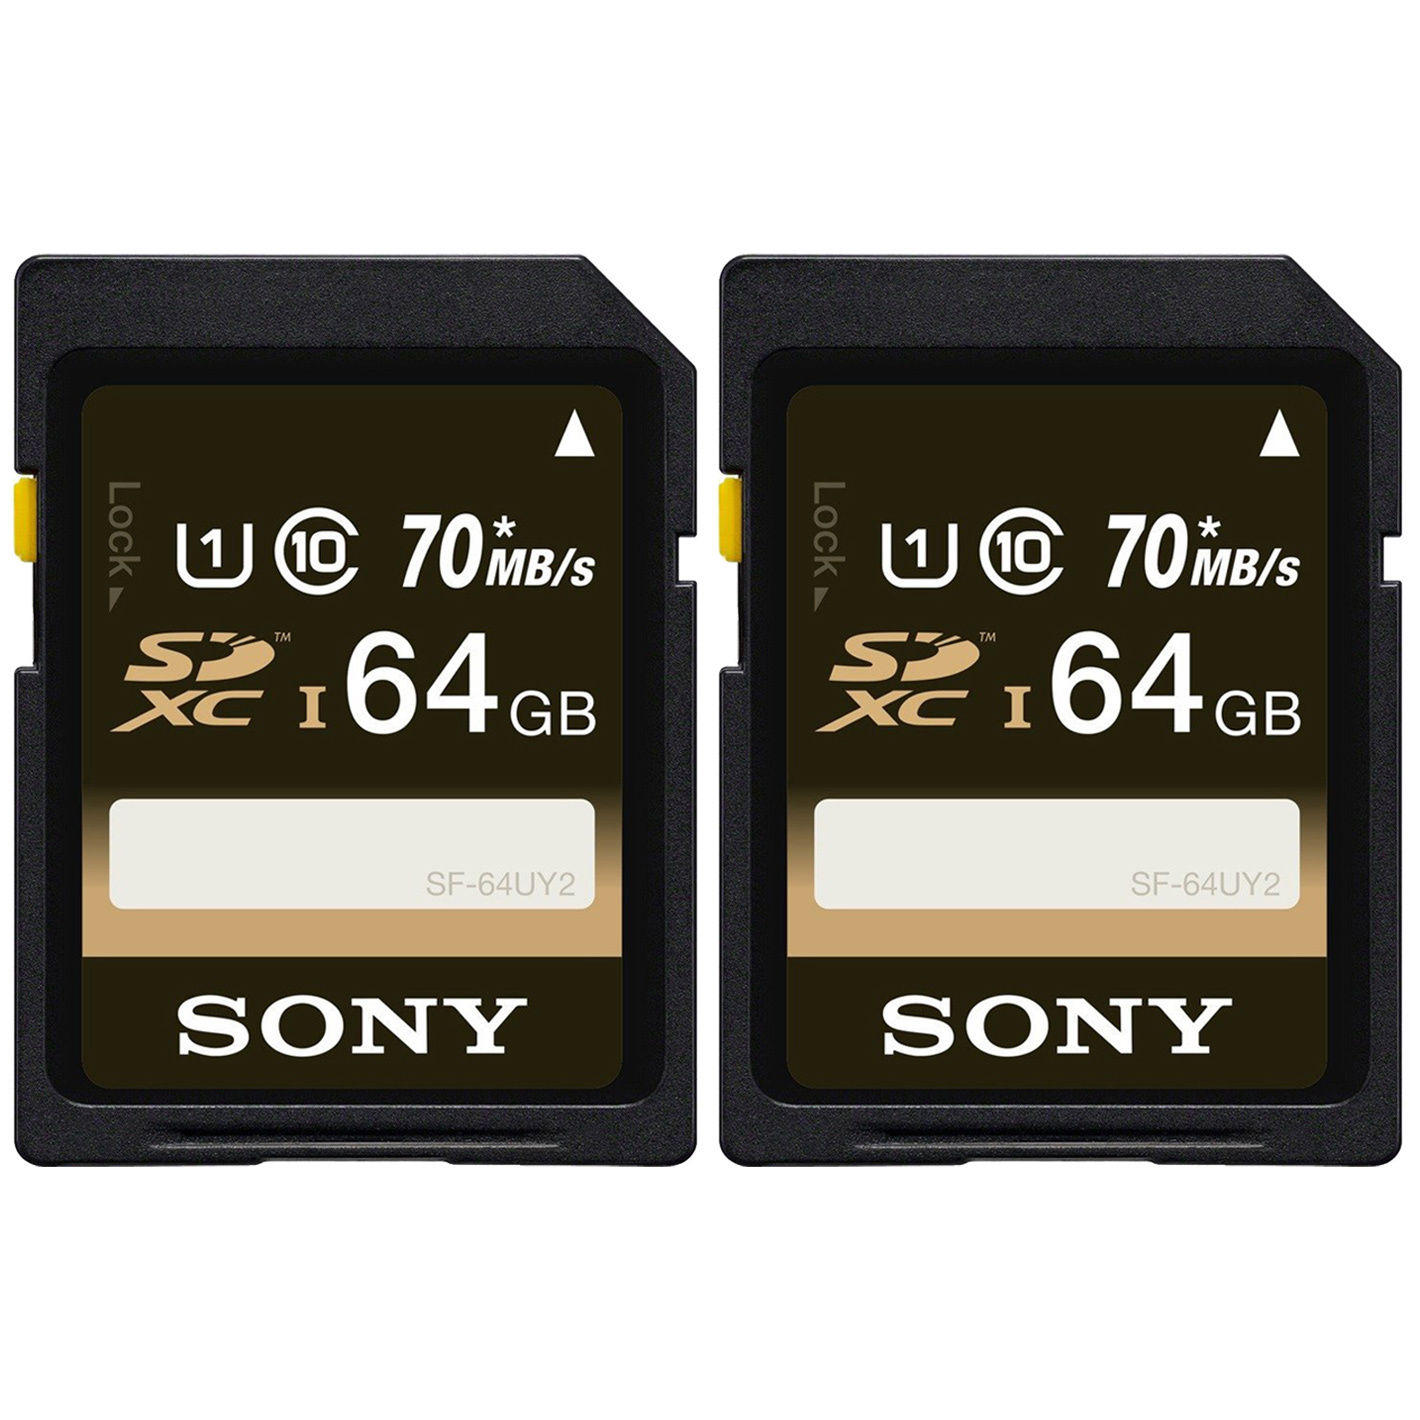 $29.99 Sony 64GB Class 10 UHS-1 SDXC up to 70MB/s Memory Card  - 2 Pack